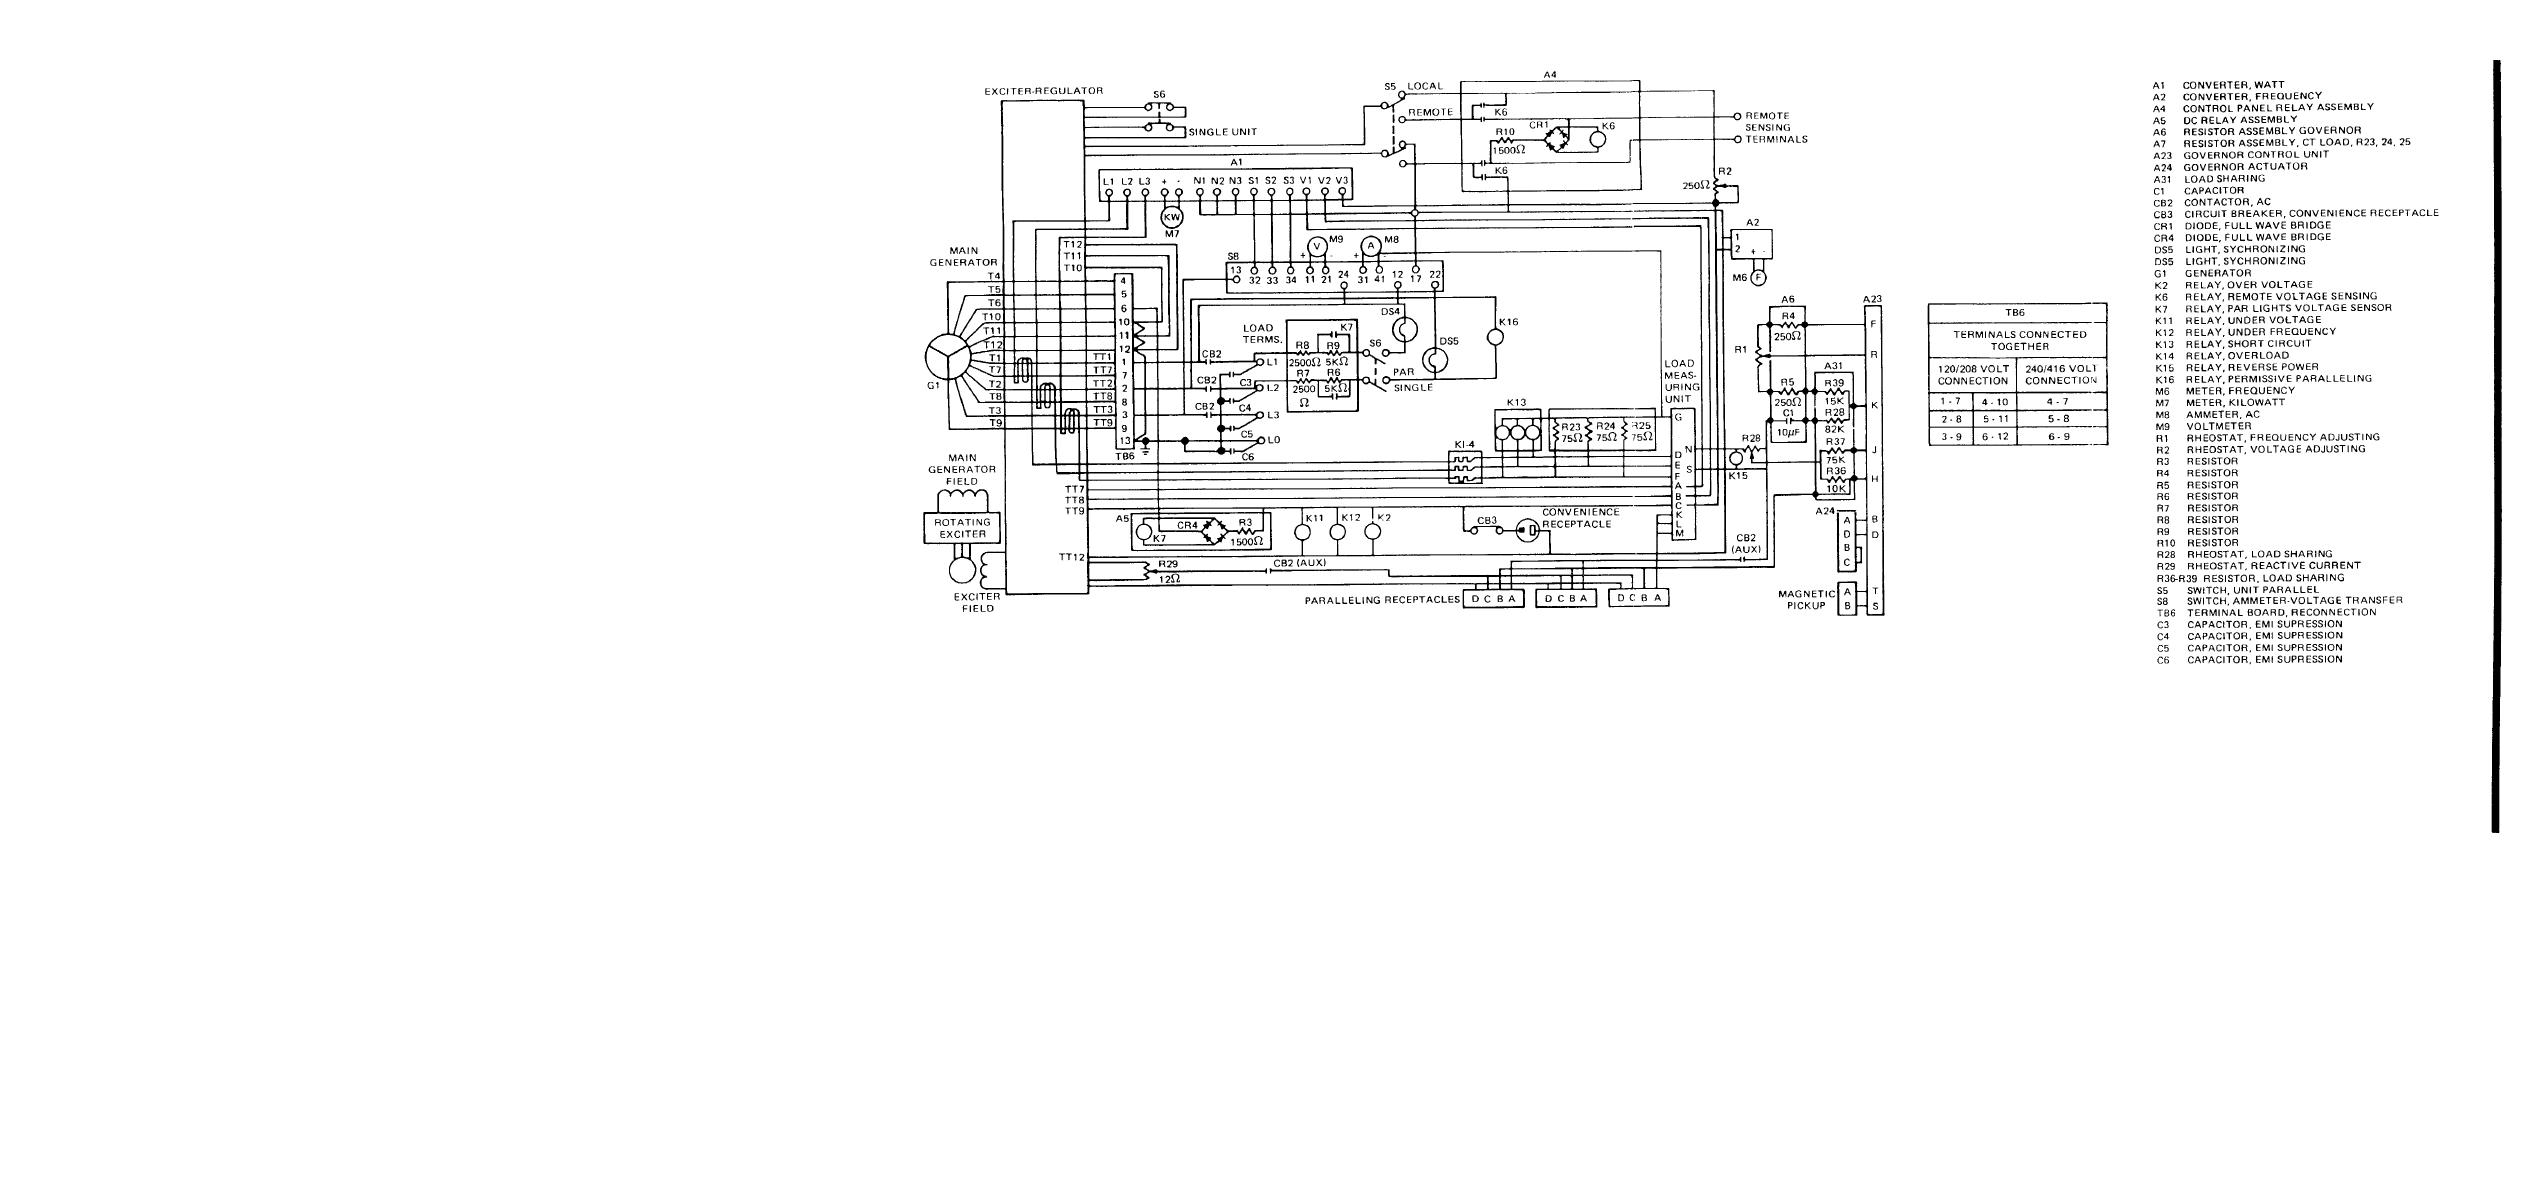 FO-2. AC Schematic Diagram, 15 and 30 KW, Precise